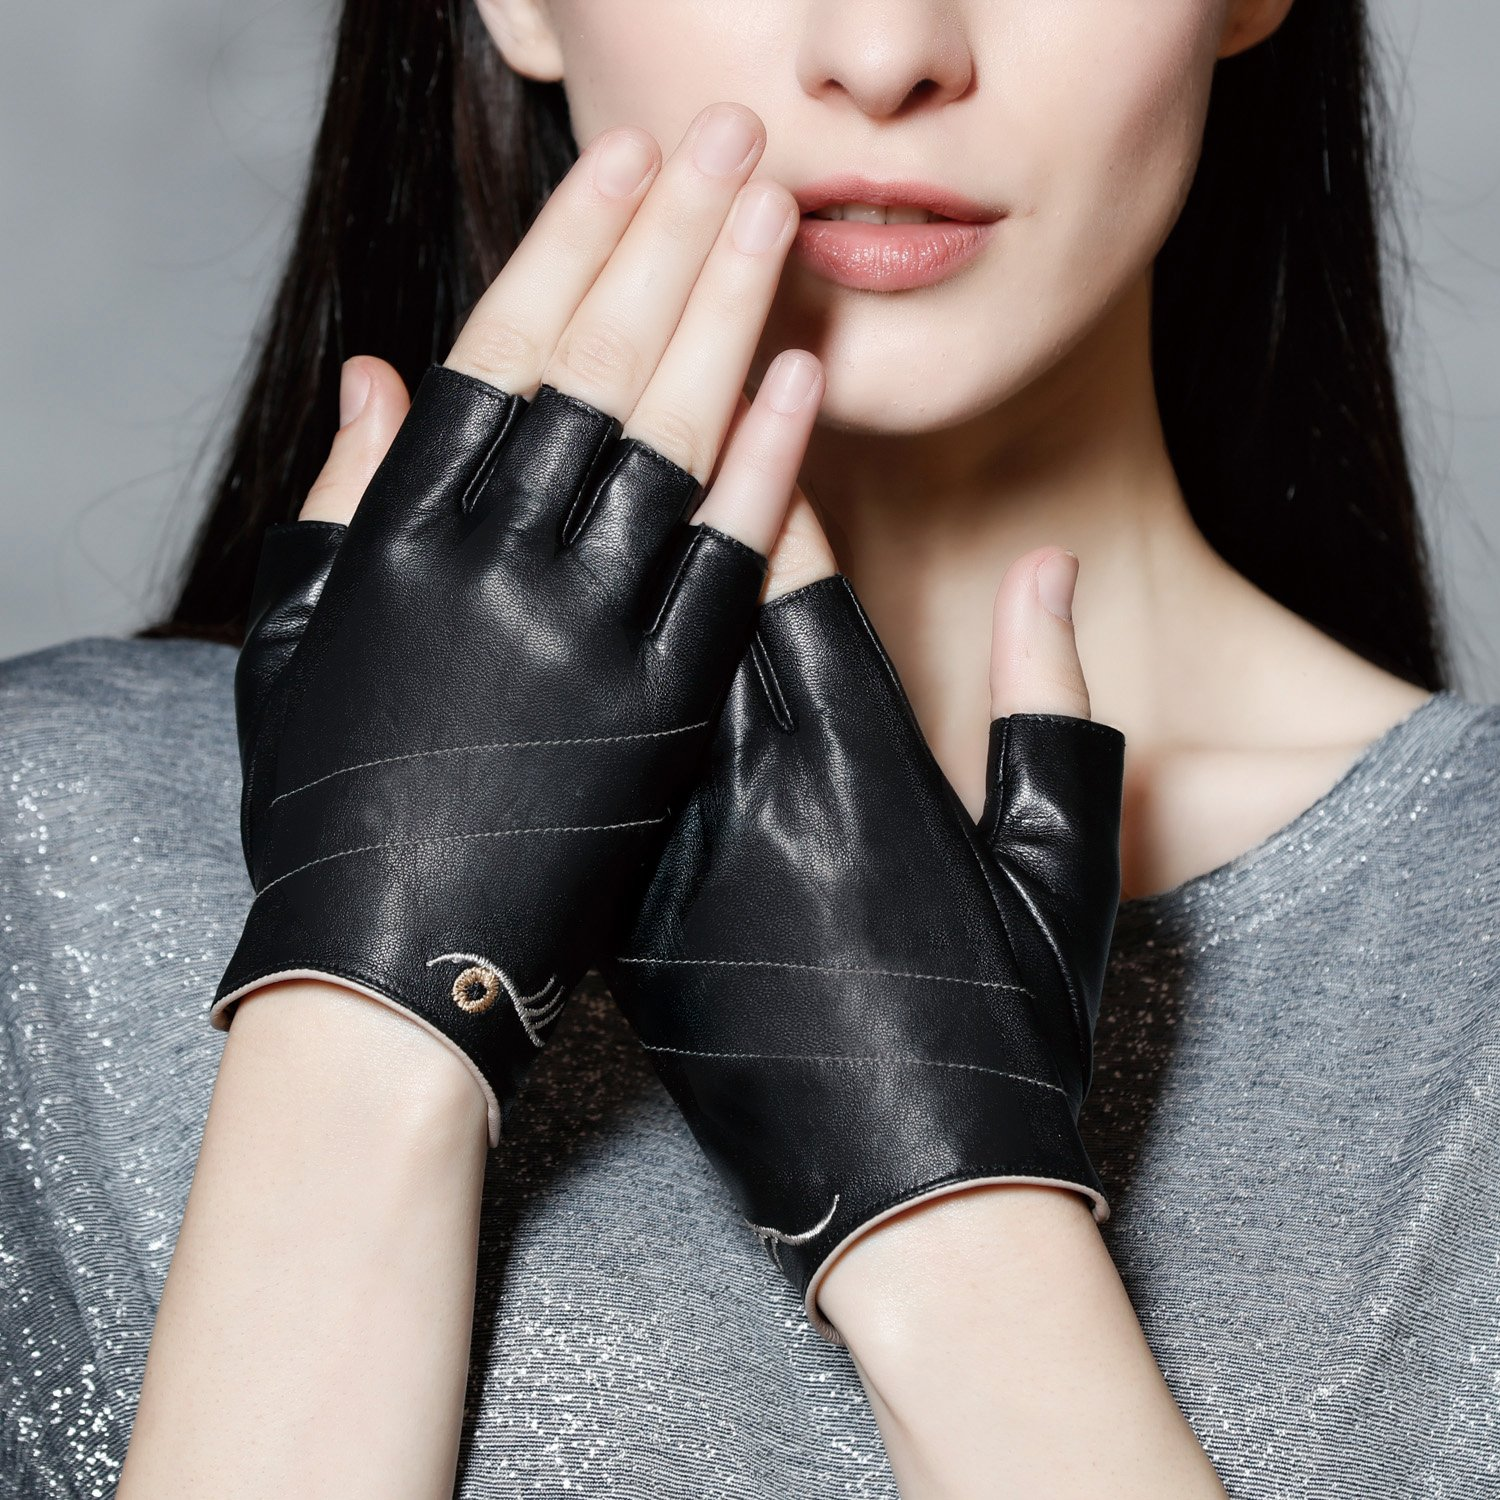 Fioretto Womens Sexy Fingerless Leather Gloves Half Finger Driving Motorcycle Cycling Unlined Ladies Leather Gloves Women's Gift Black M by Fioretto (Image #2)